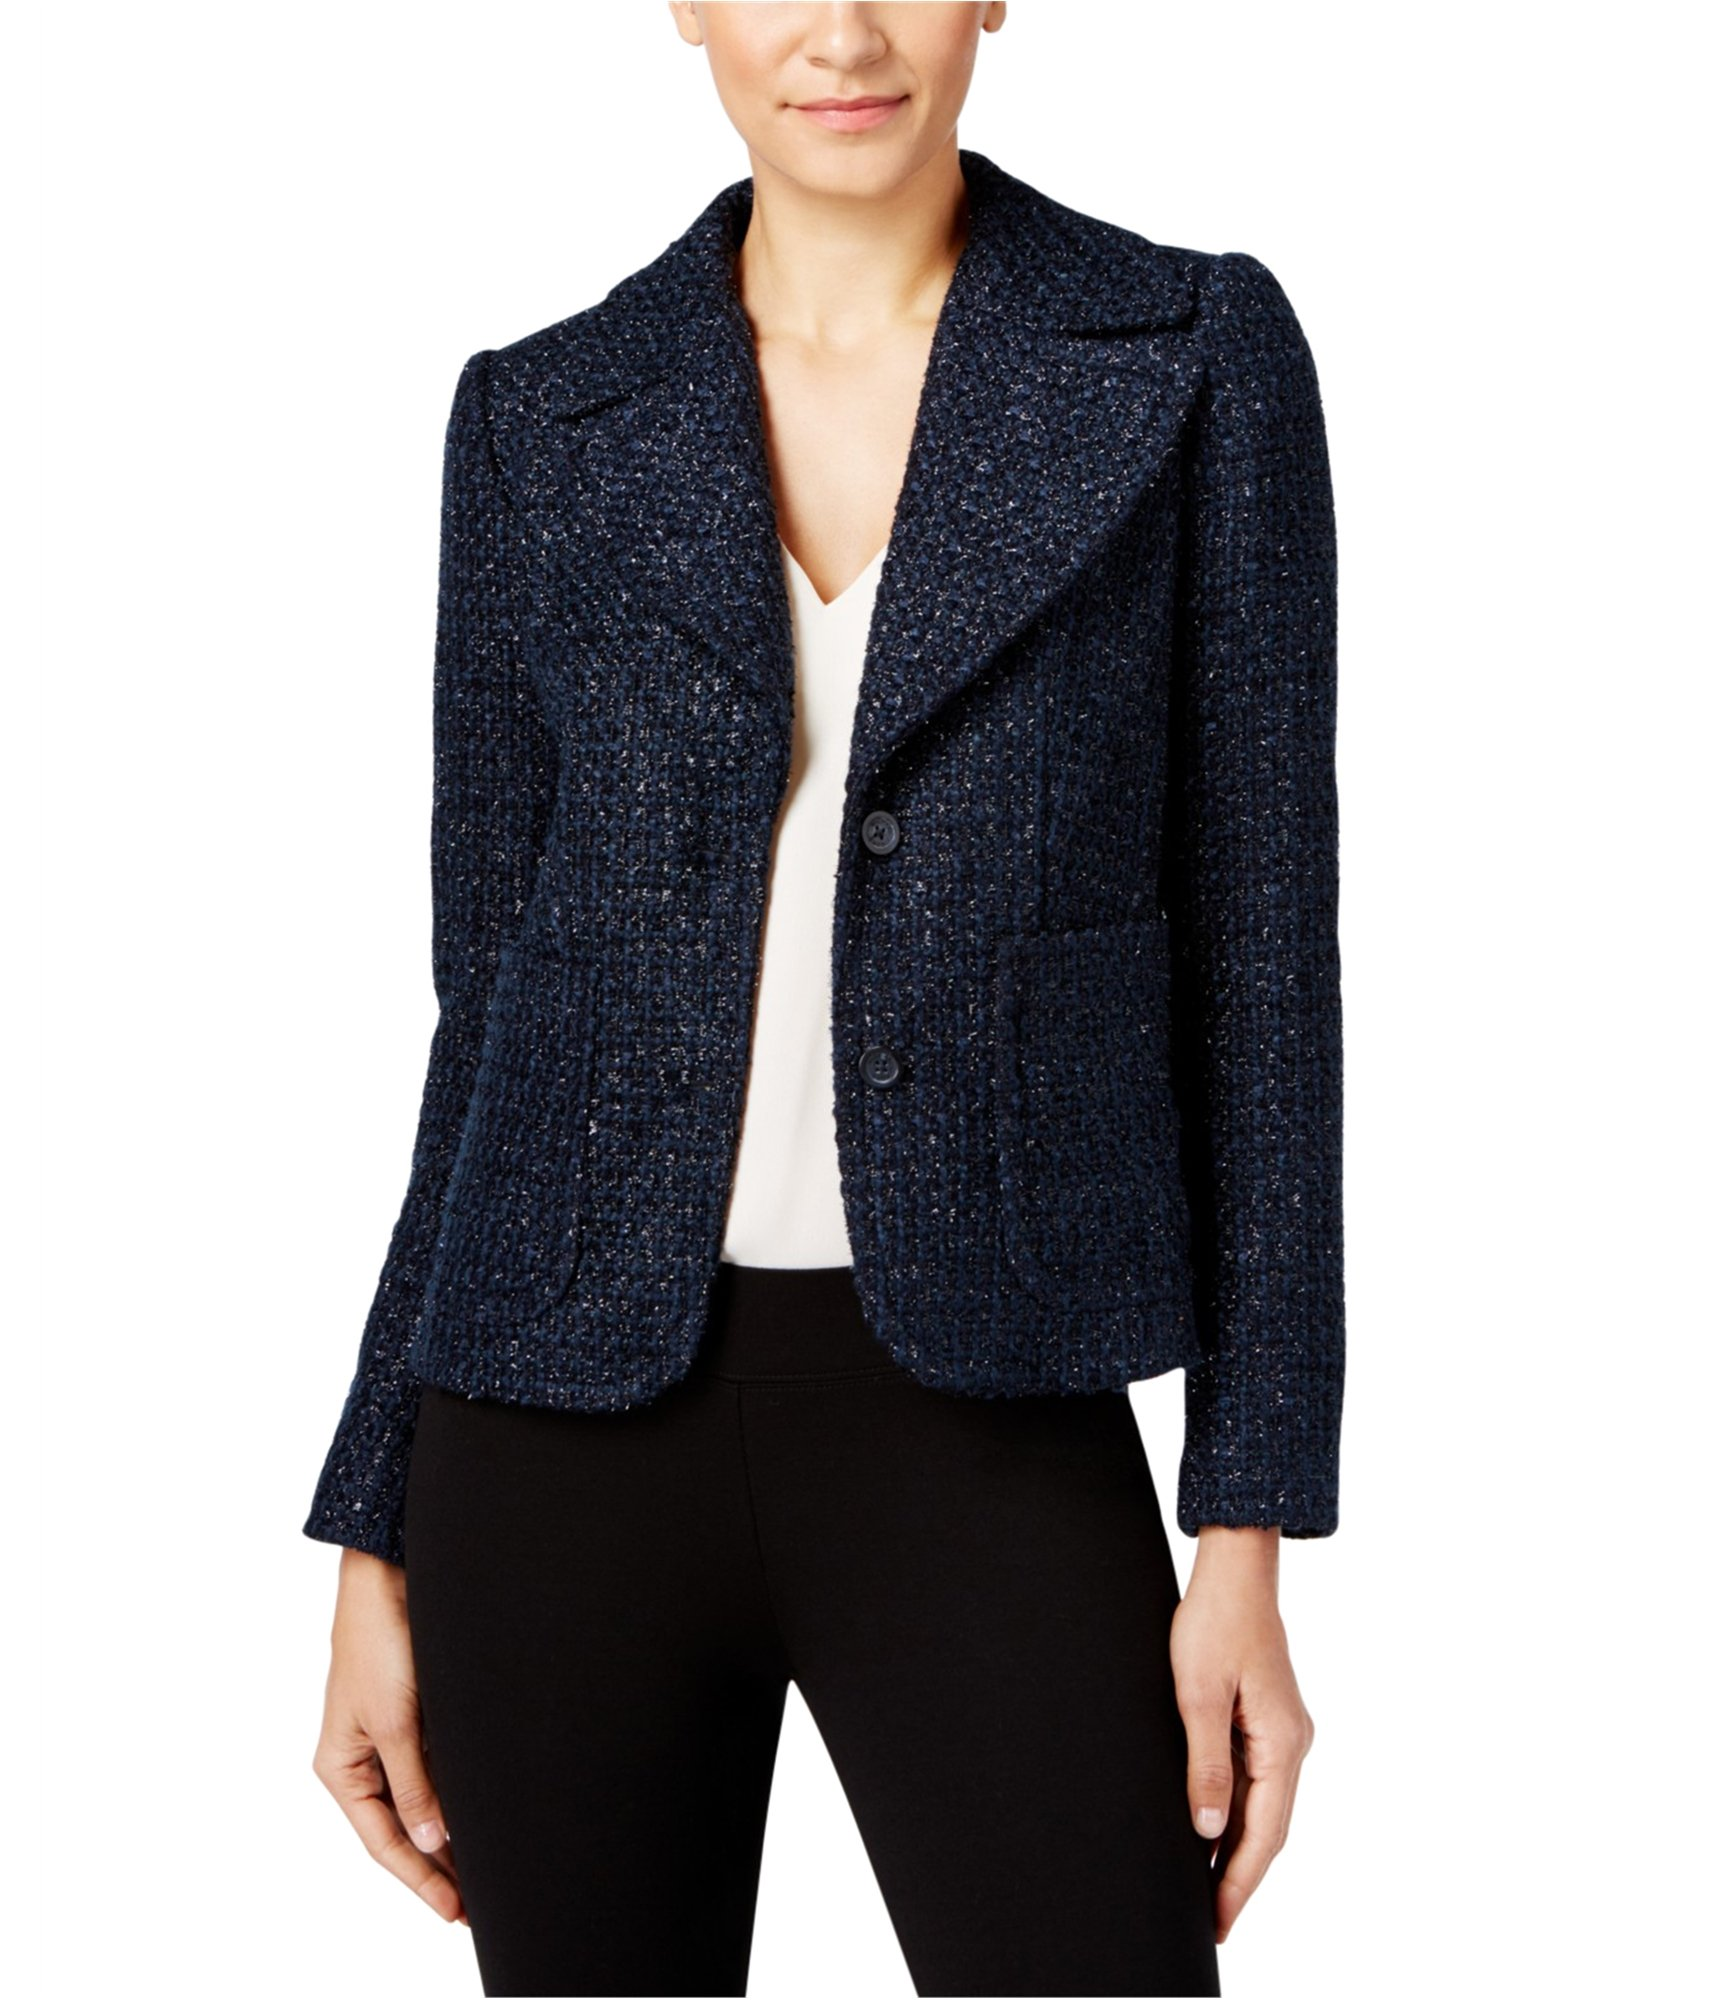 Michael Kors Womens Tweed Shrunken Two Button Blazer Jacket NEWNAVY 10P - Petite